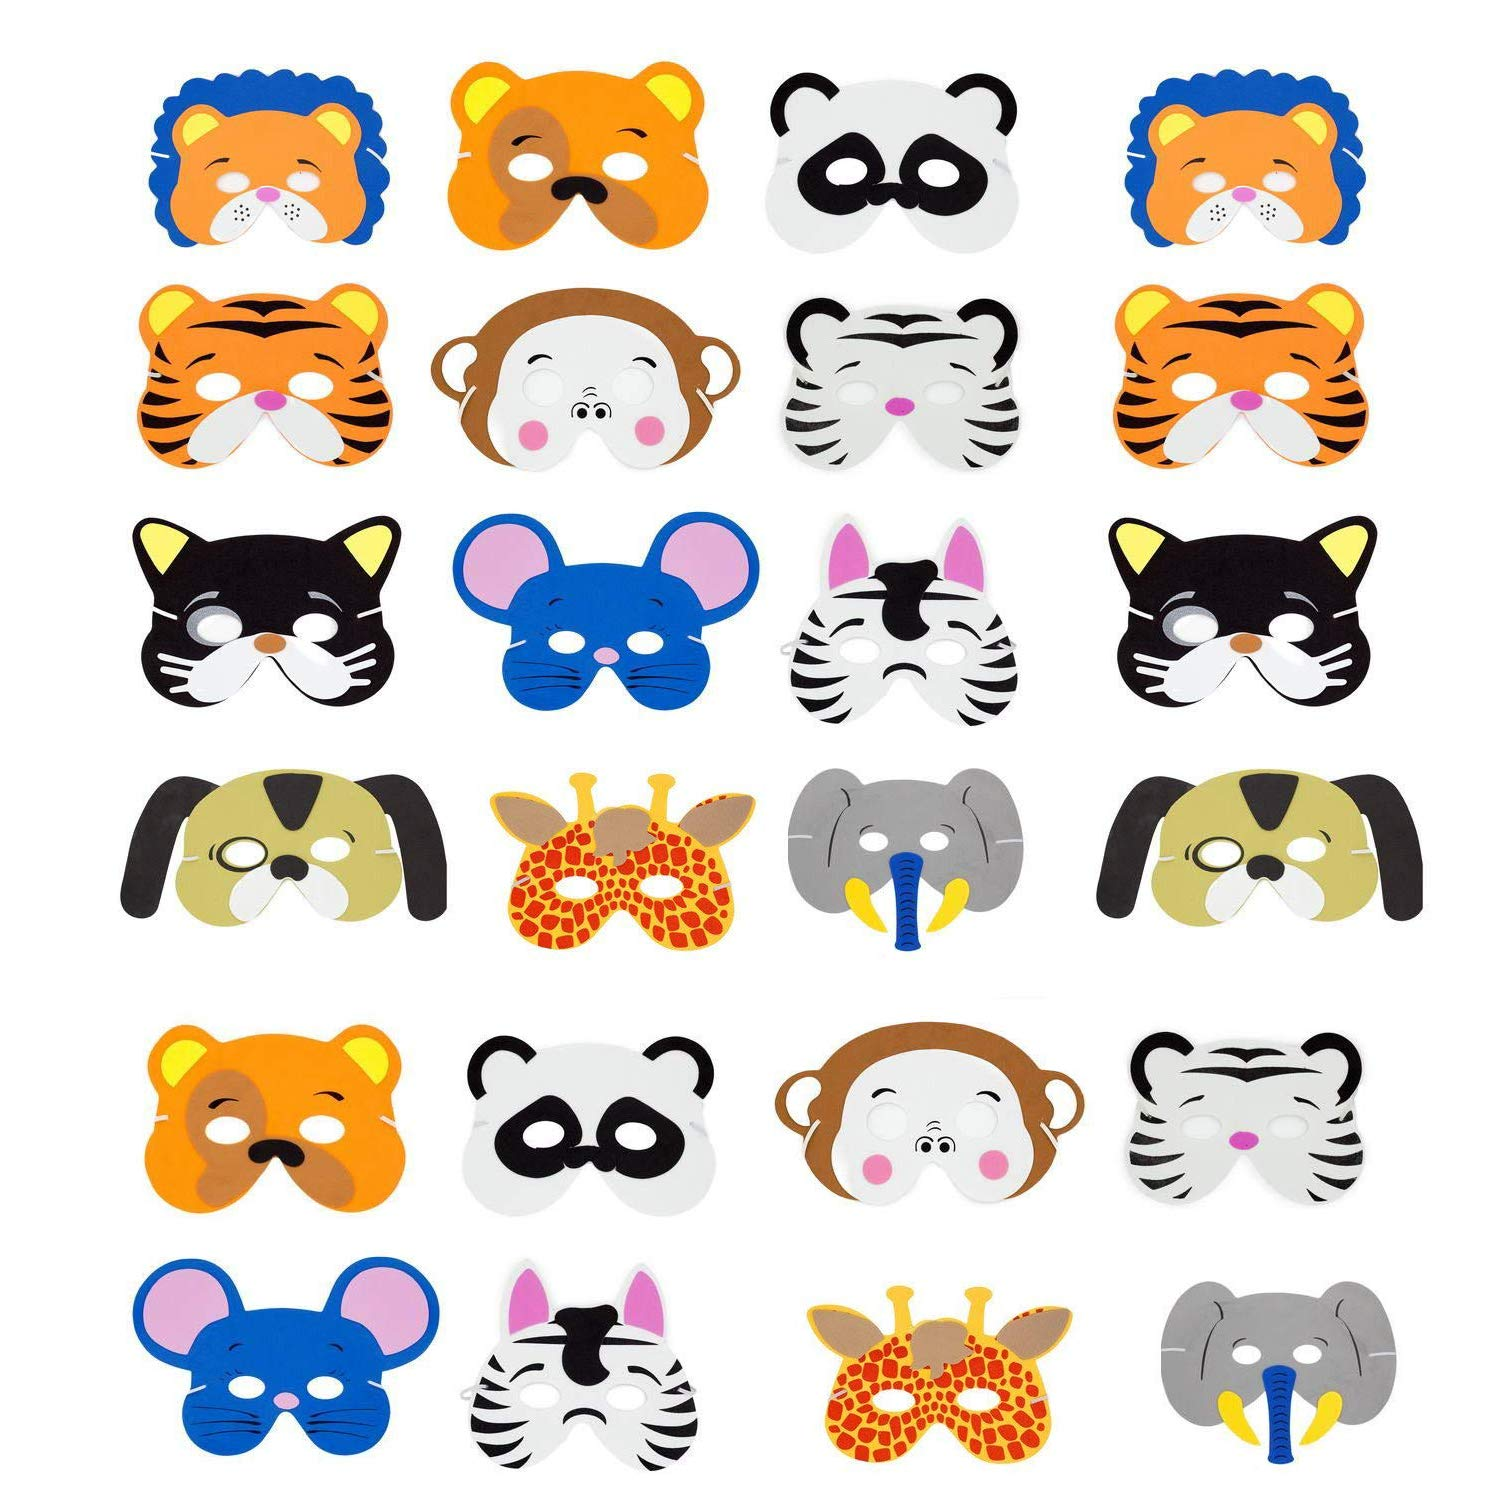 INTVN NTVN Animal Masks Eva Cartoon Masks Halloween Masks Craft Kits, 24 Pieces